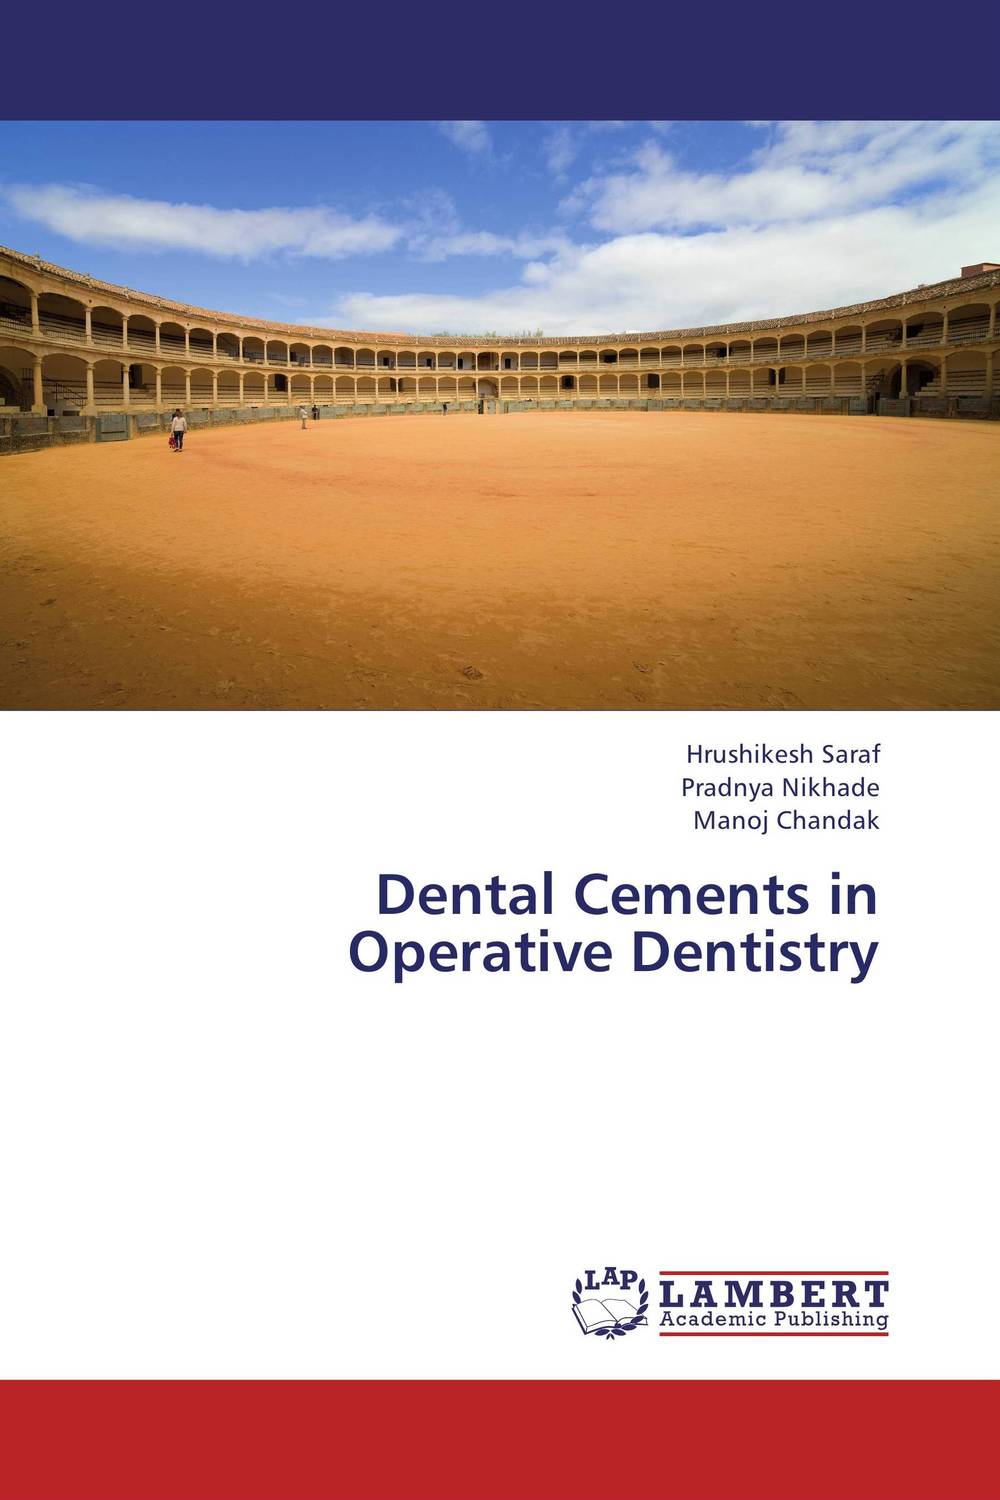 Dental Cements in Operative Dentistry karanprakash singh ramanpreet kaur bhullar and sumit kochhar forensic dentistry teeth and their secrets